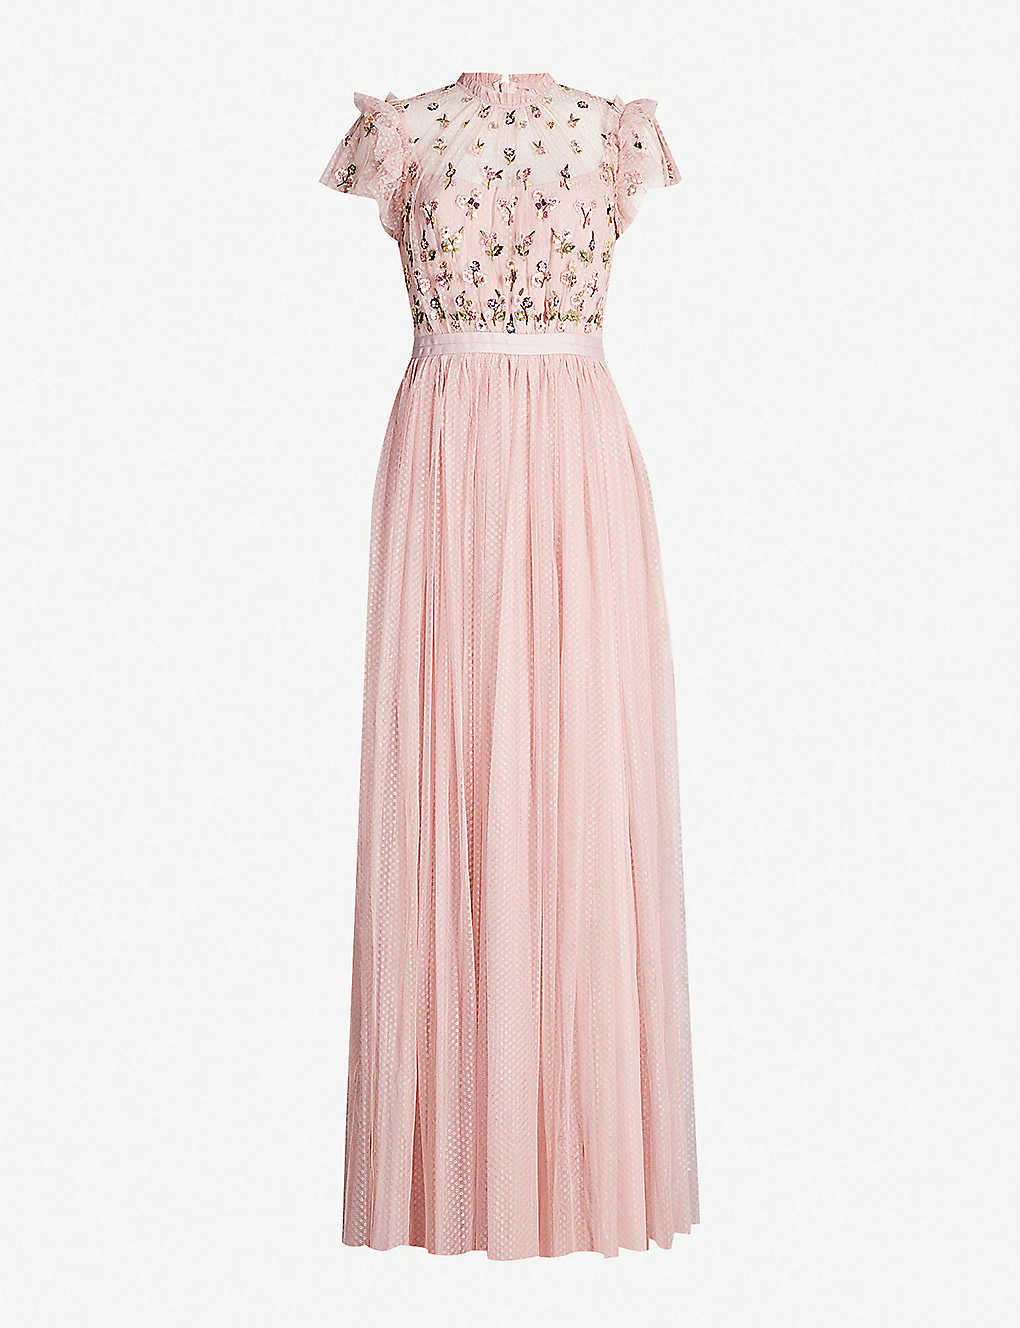 8b1a98f49a6 NEEDLE AND THREAD - Rococo embroidered tulle maxi dress